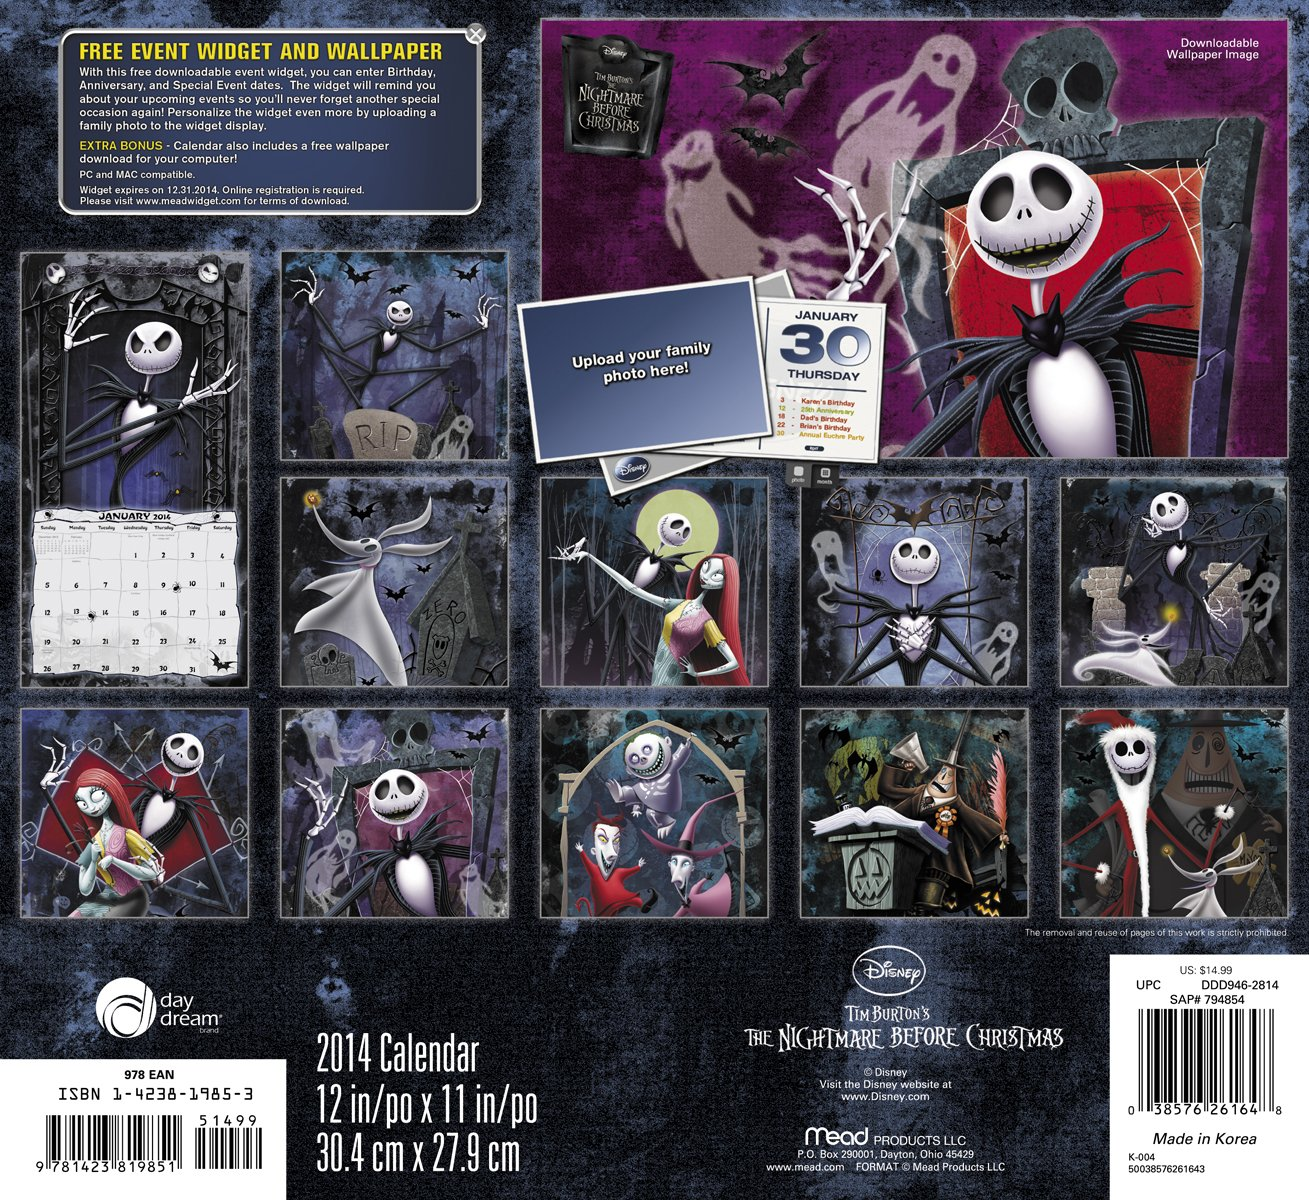 Disney the Nightmare Before Christmas Calendar: Amazon.co.uk: Books